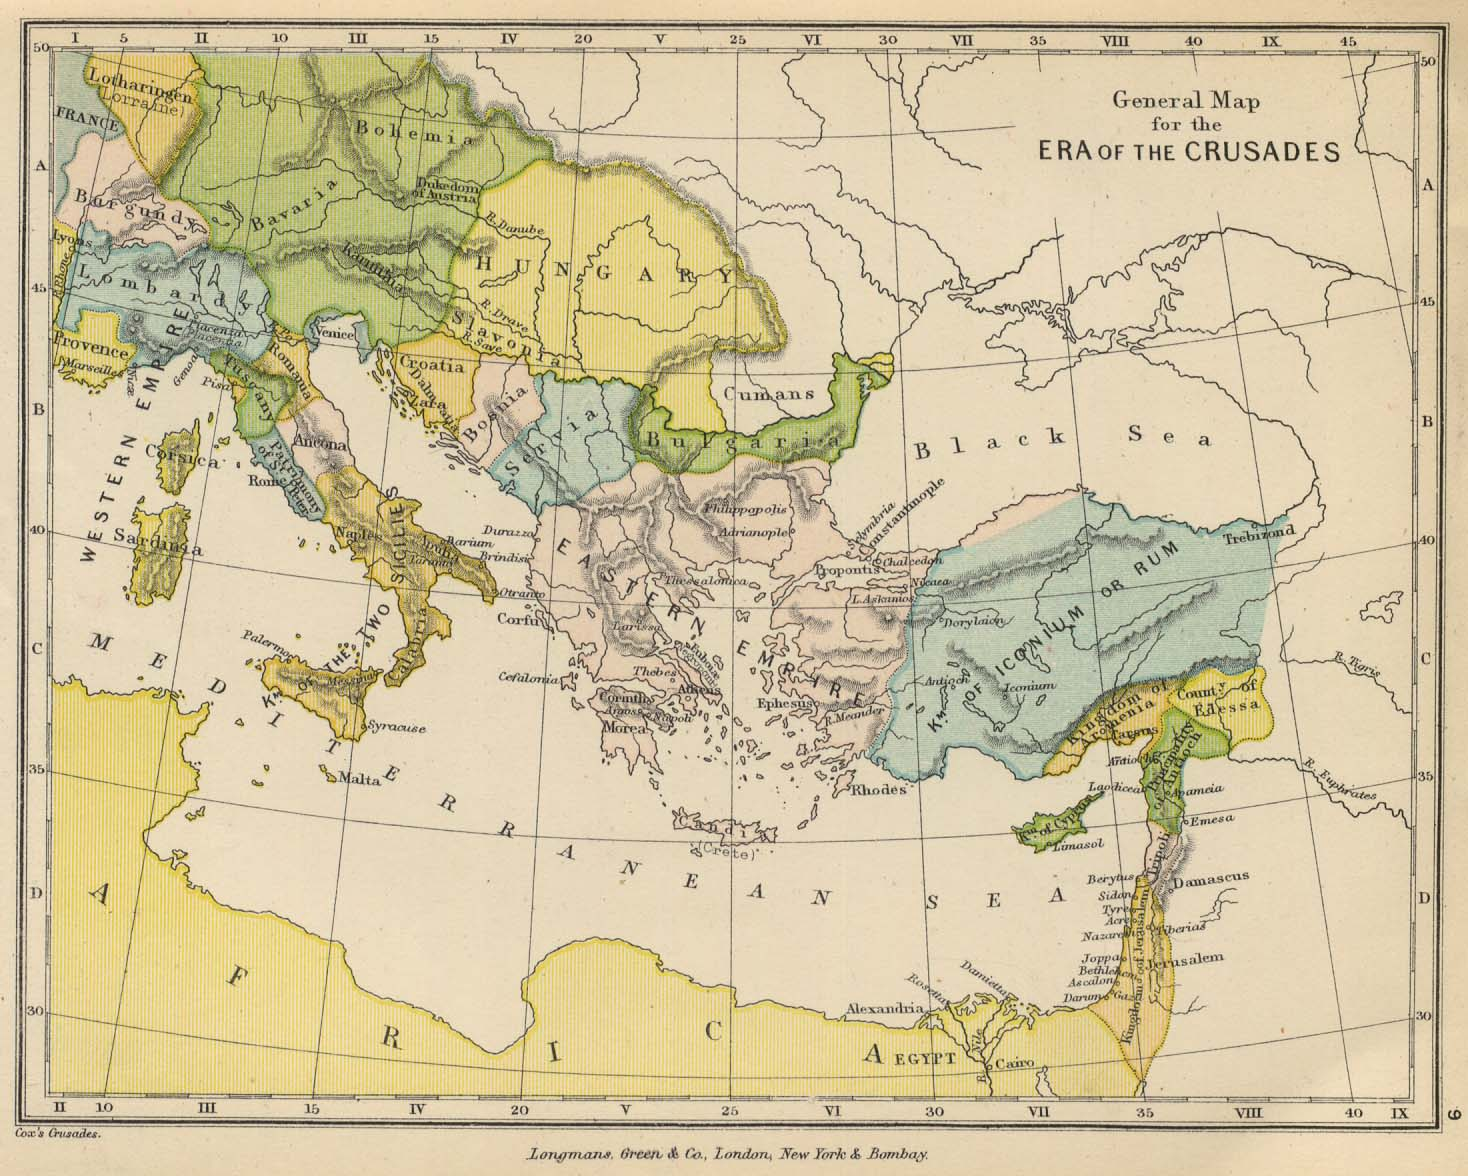 Public schools historical atlas by c colbeck perry castaeda map map 8 europe and the east to illustrate the crusades gumiabroncs Choice Image